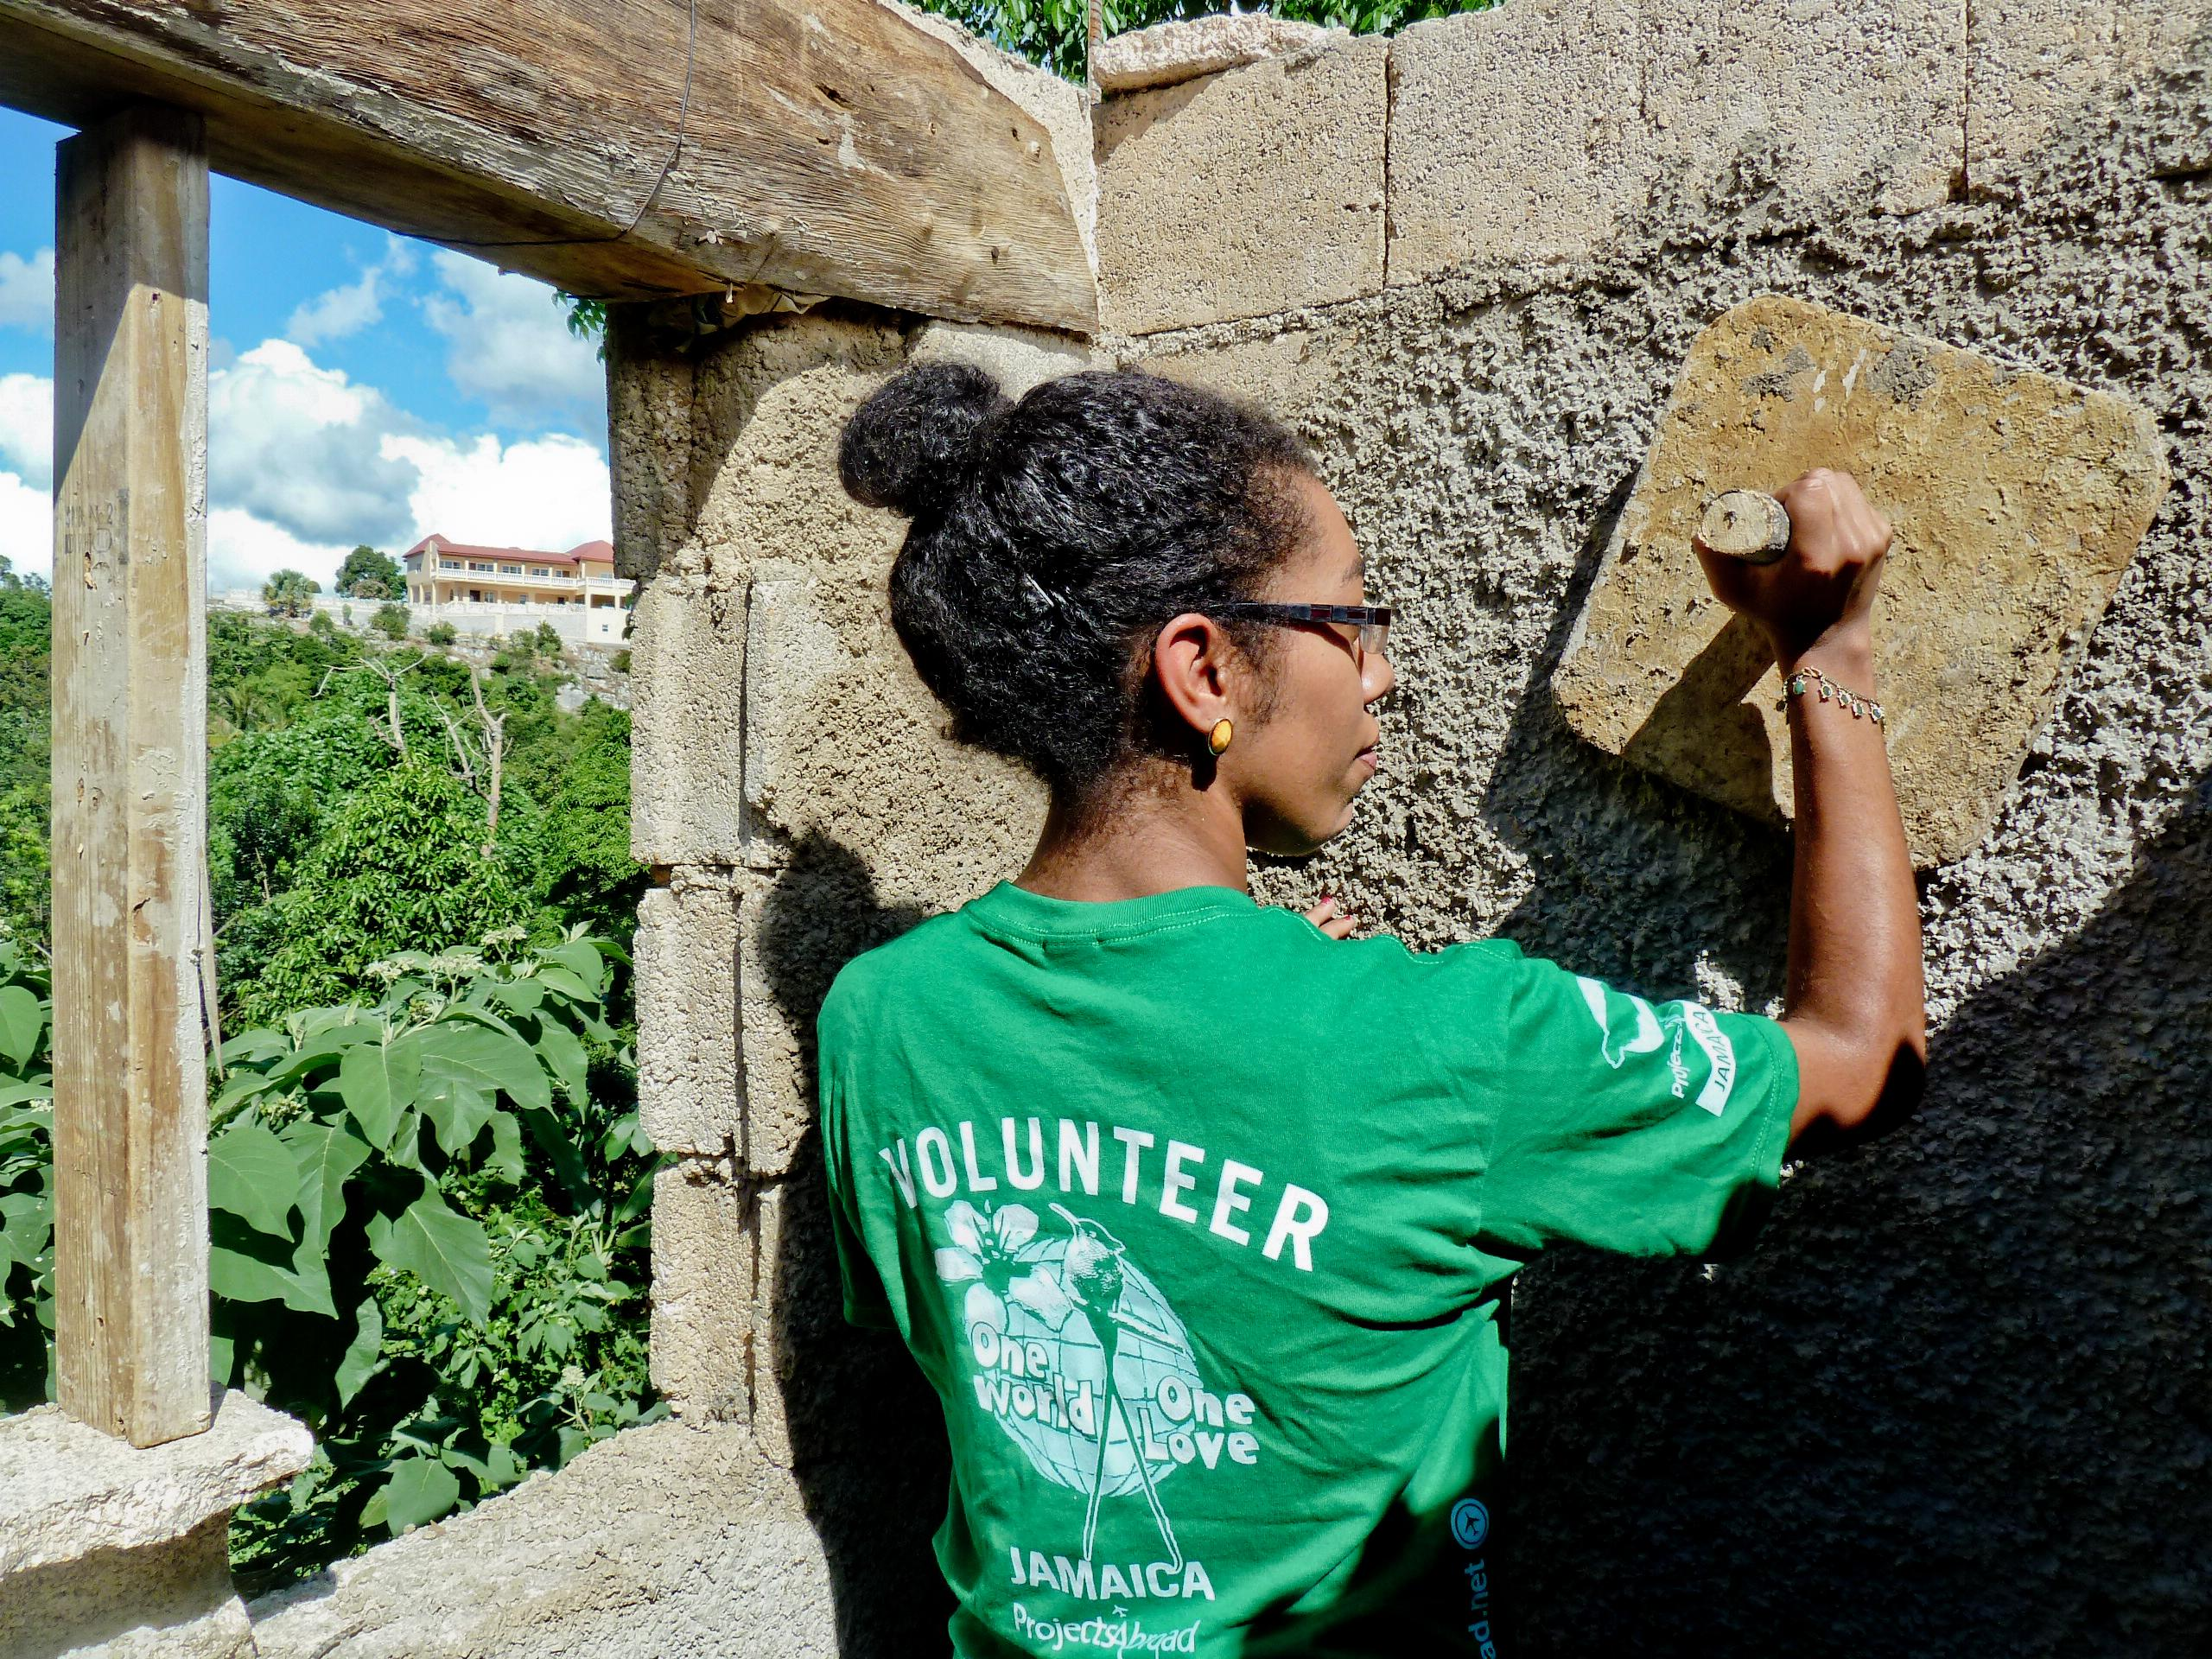 A female volunteer with Projects Abroad can be pictured helping with plastering as part of her building volunteer work in Jamaica.